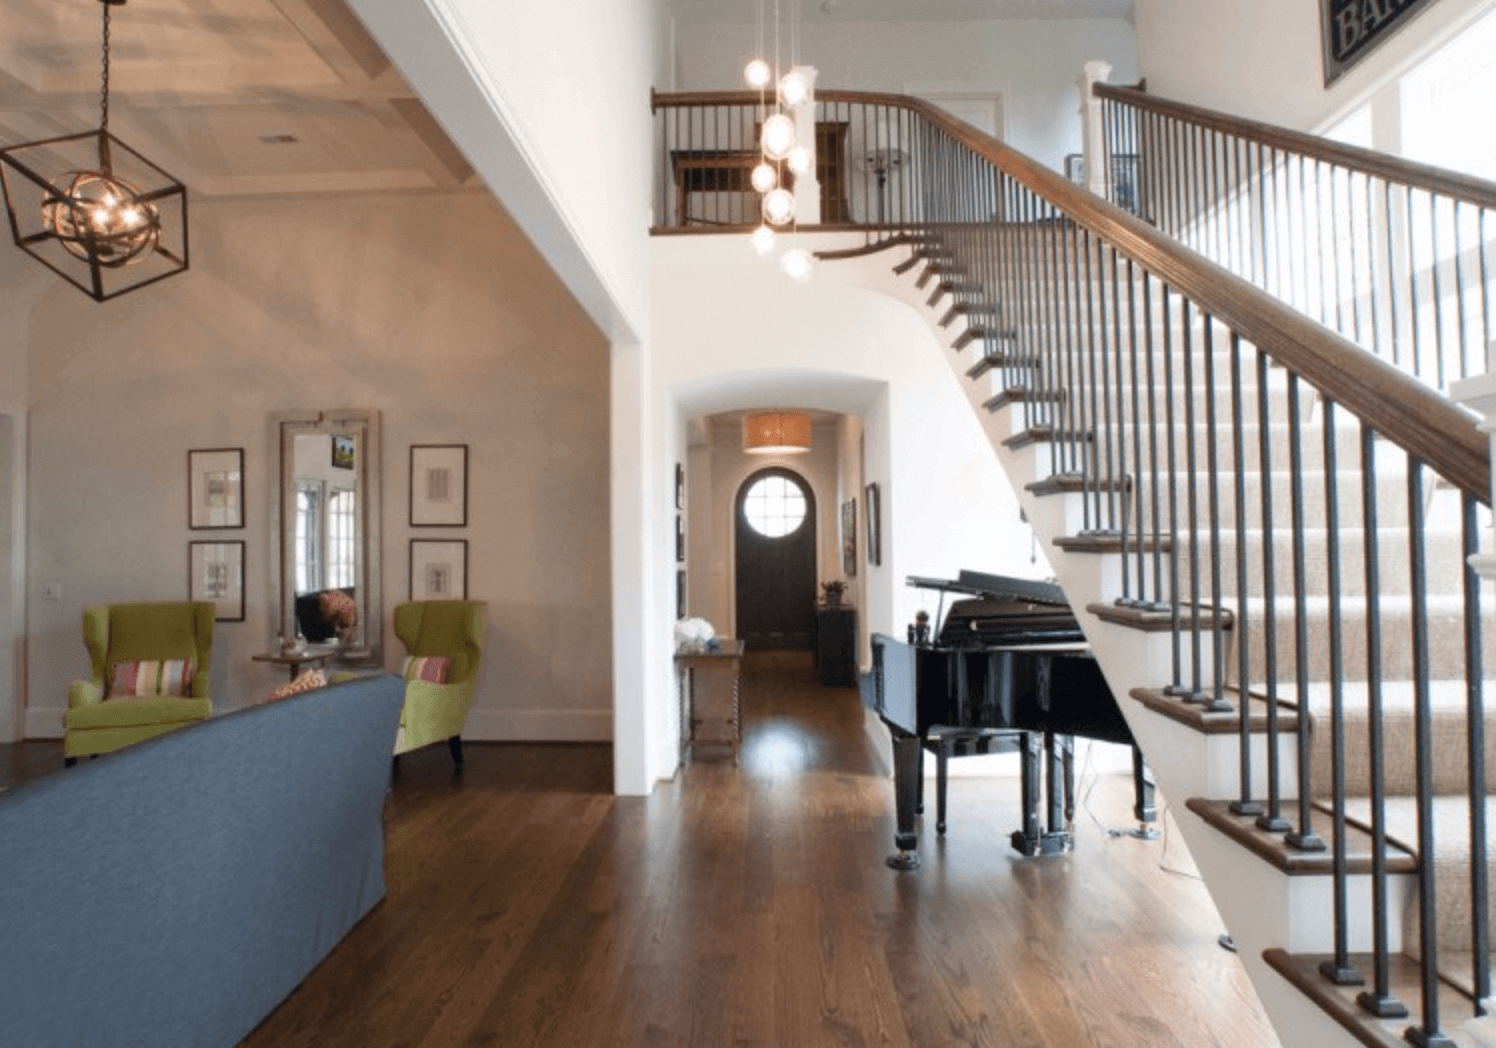 Best Home Builders, Architects & Home Resources in Nashville